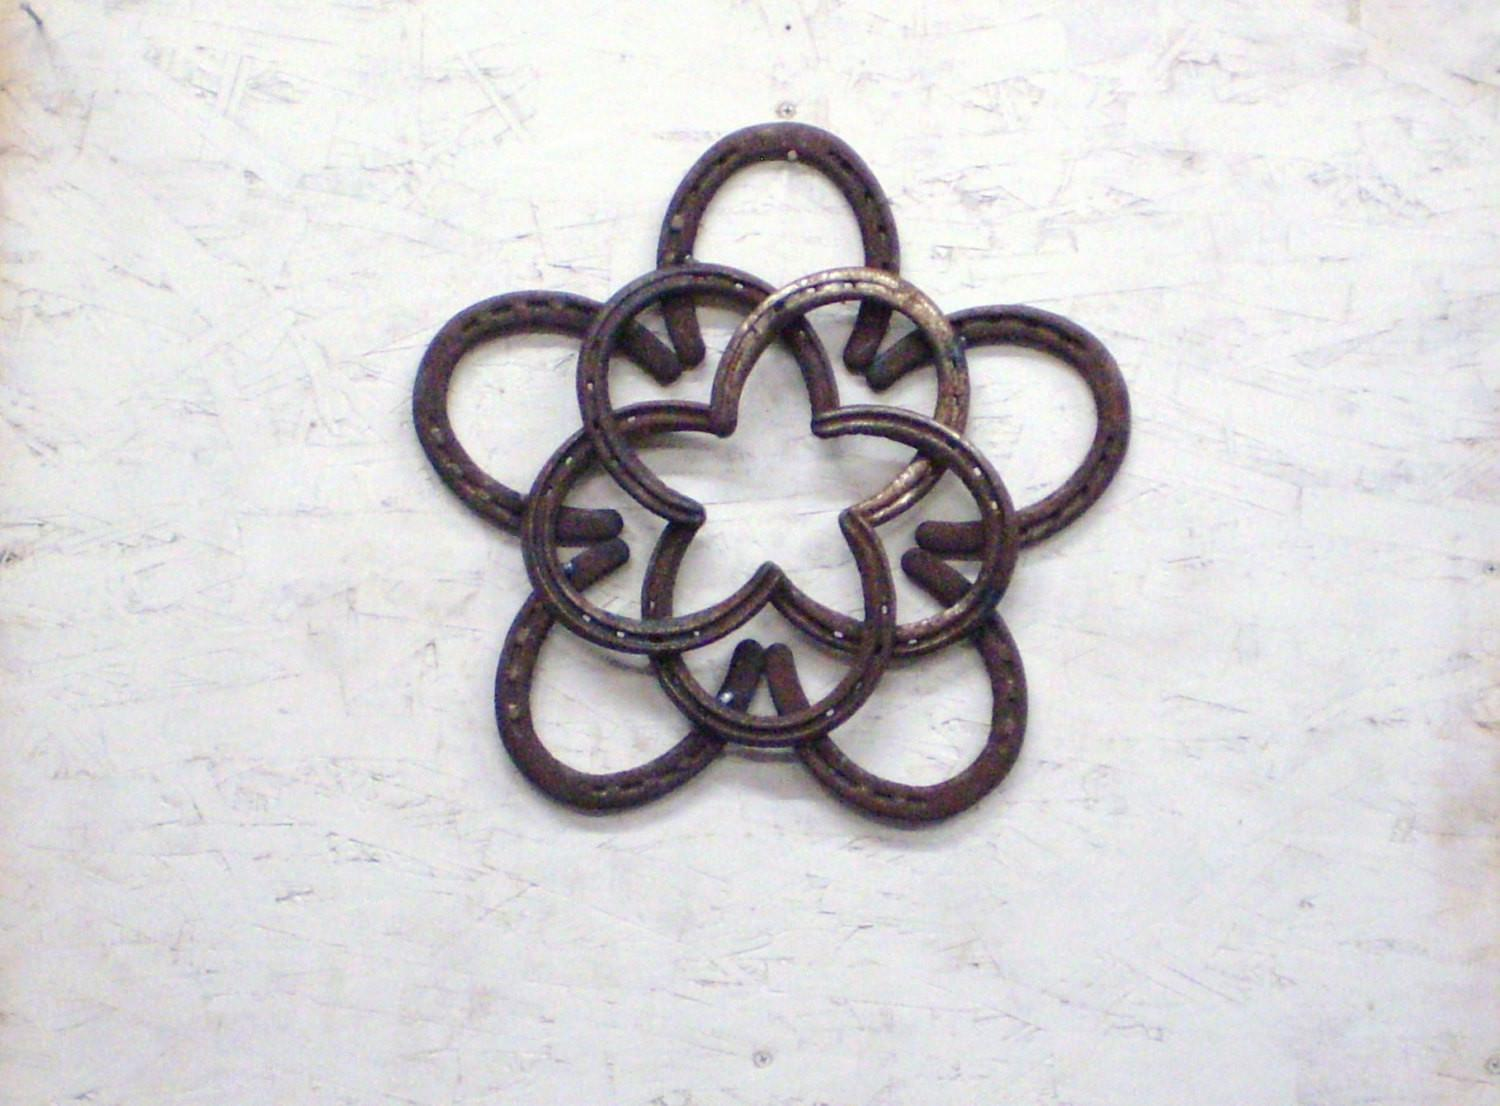 Rustic Horseshoe Star Wreath Indoor Outdoor Home Decor